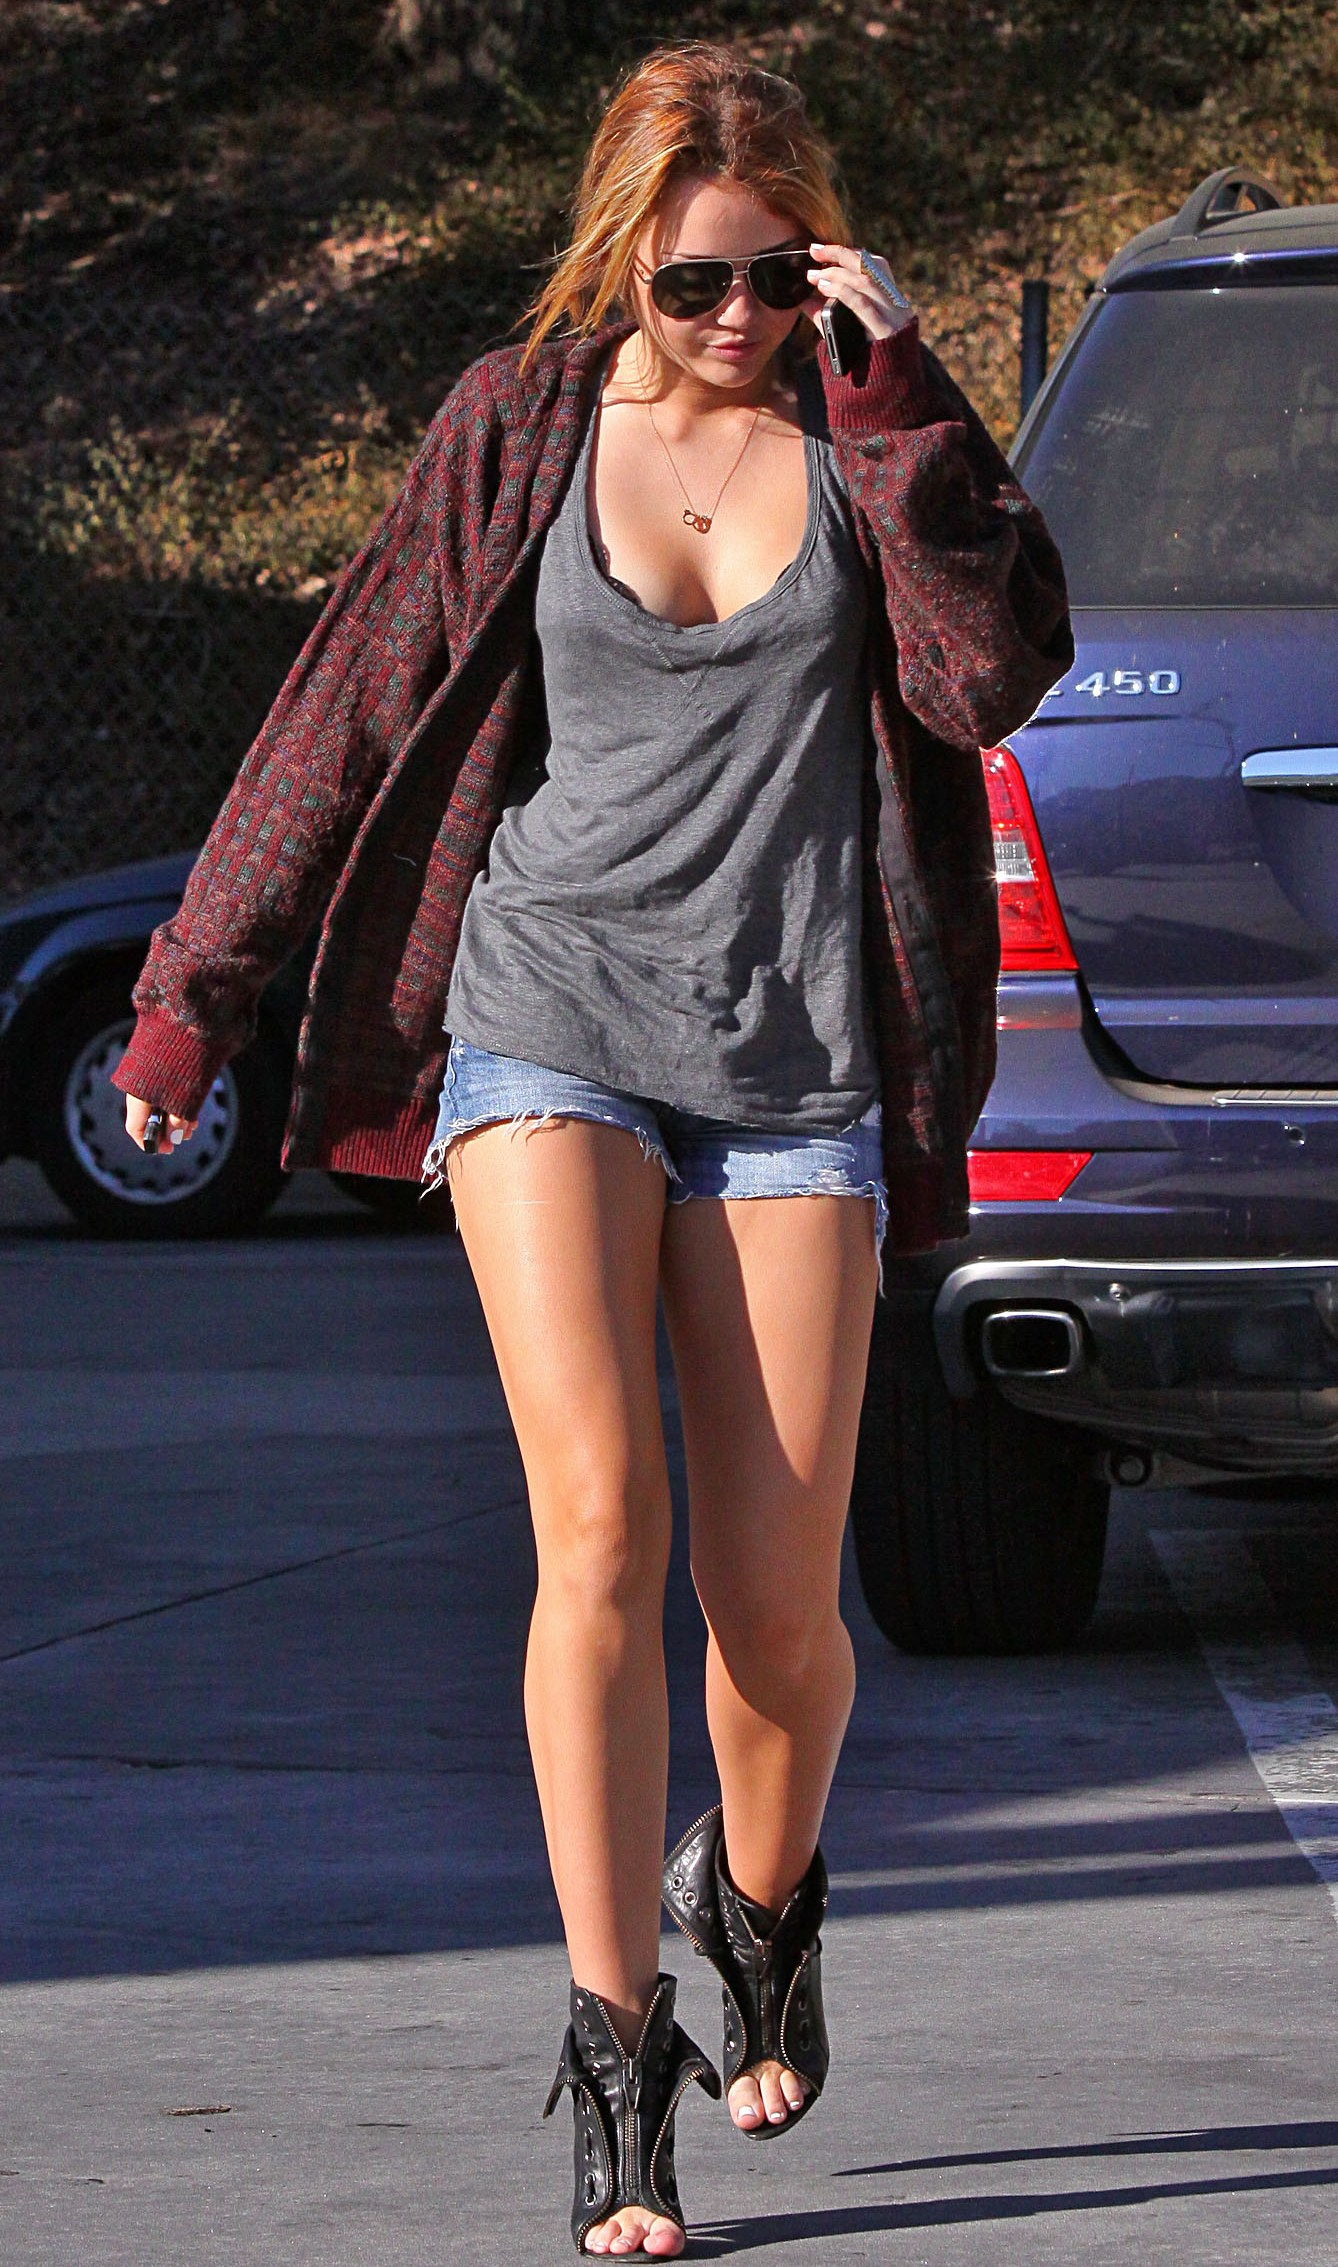 miley cyrus cleavage Miley Cyrus In A See Thru Shirt & Short Booty Shorts